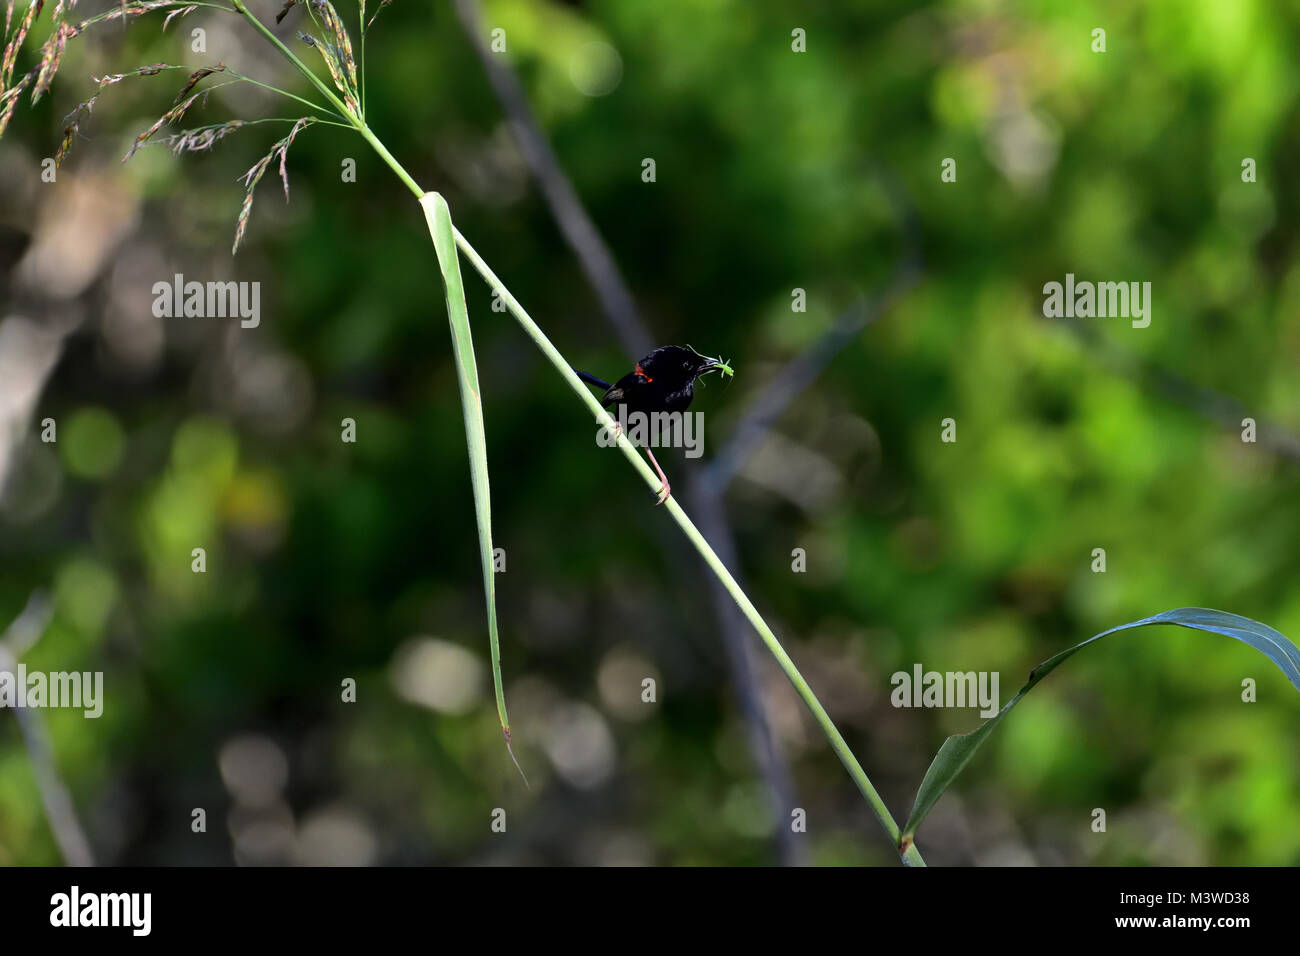 An Australian Male Red-backed Fairy-wren with an Insect in its mouth - Stock Image